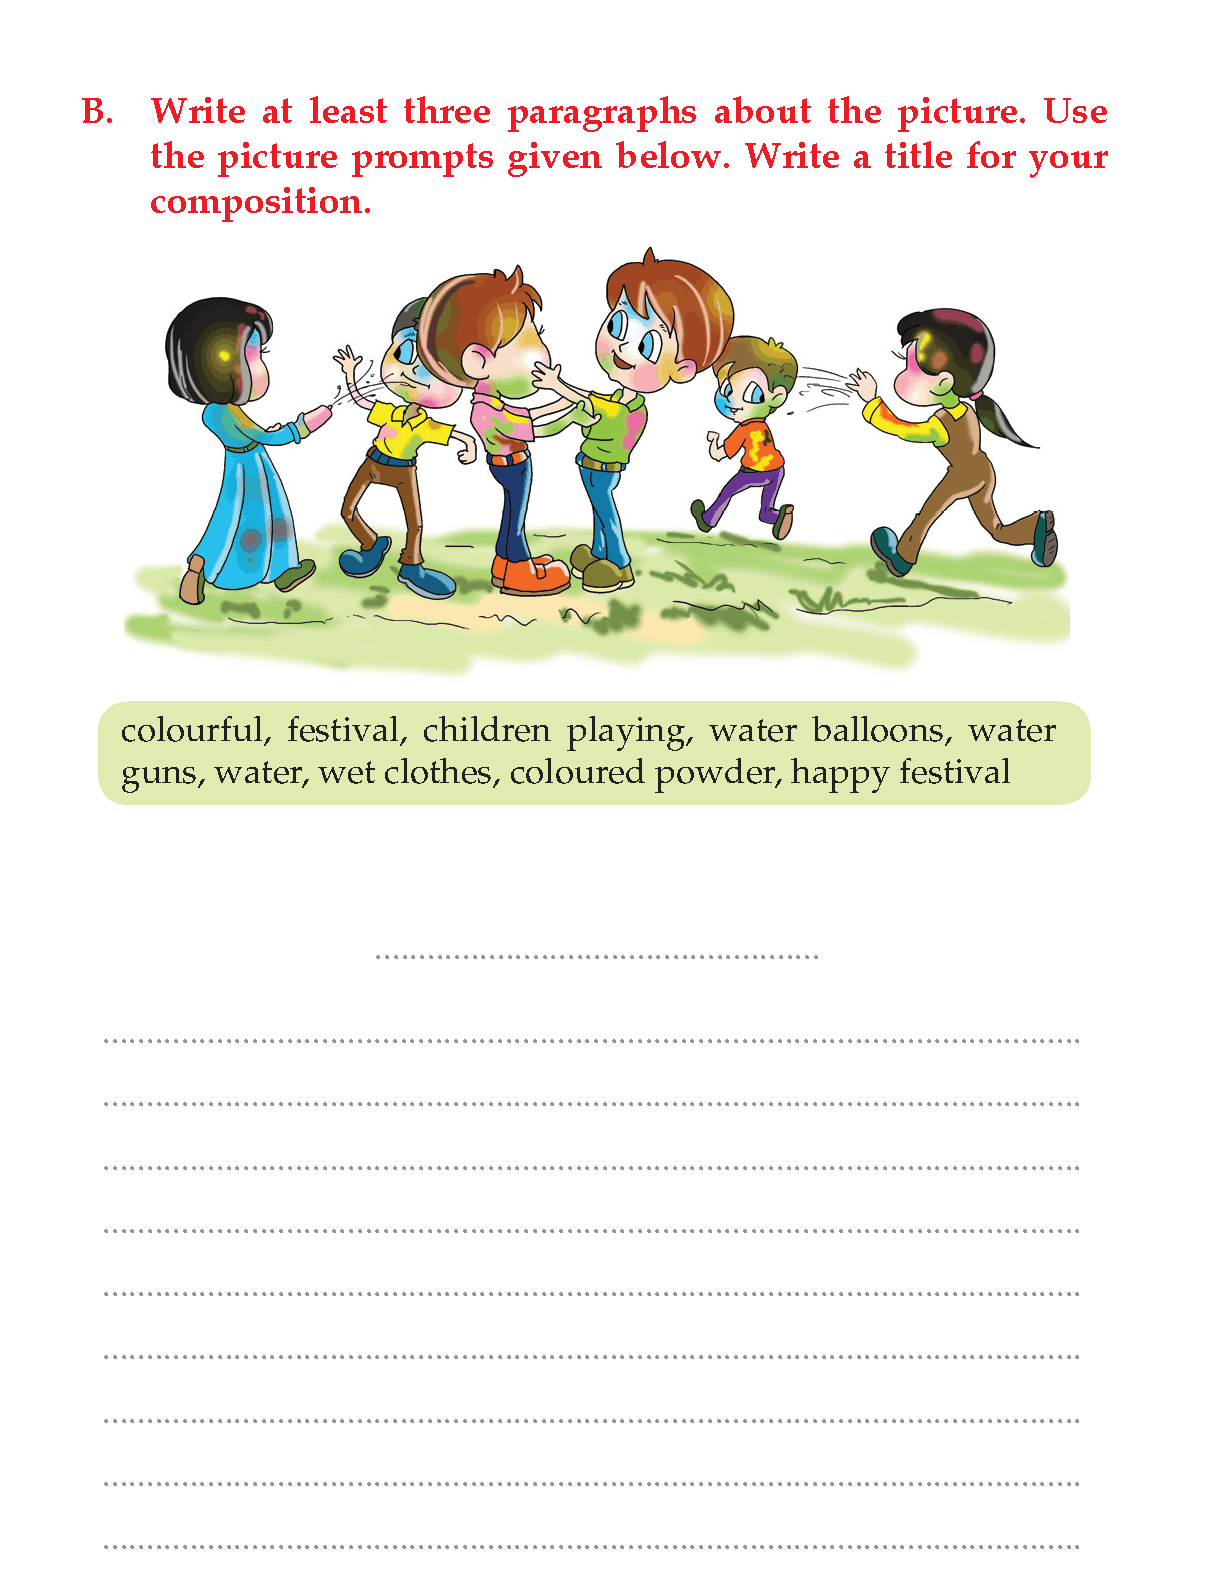 Writing skill -grade 3 - picture composition (8) | Picture ...